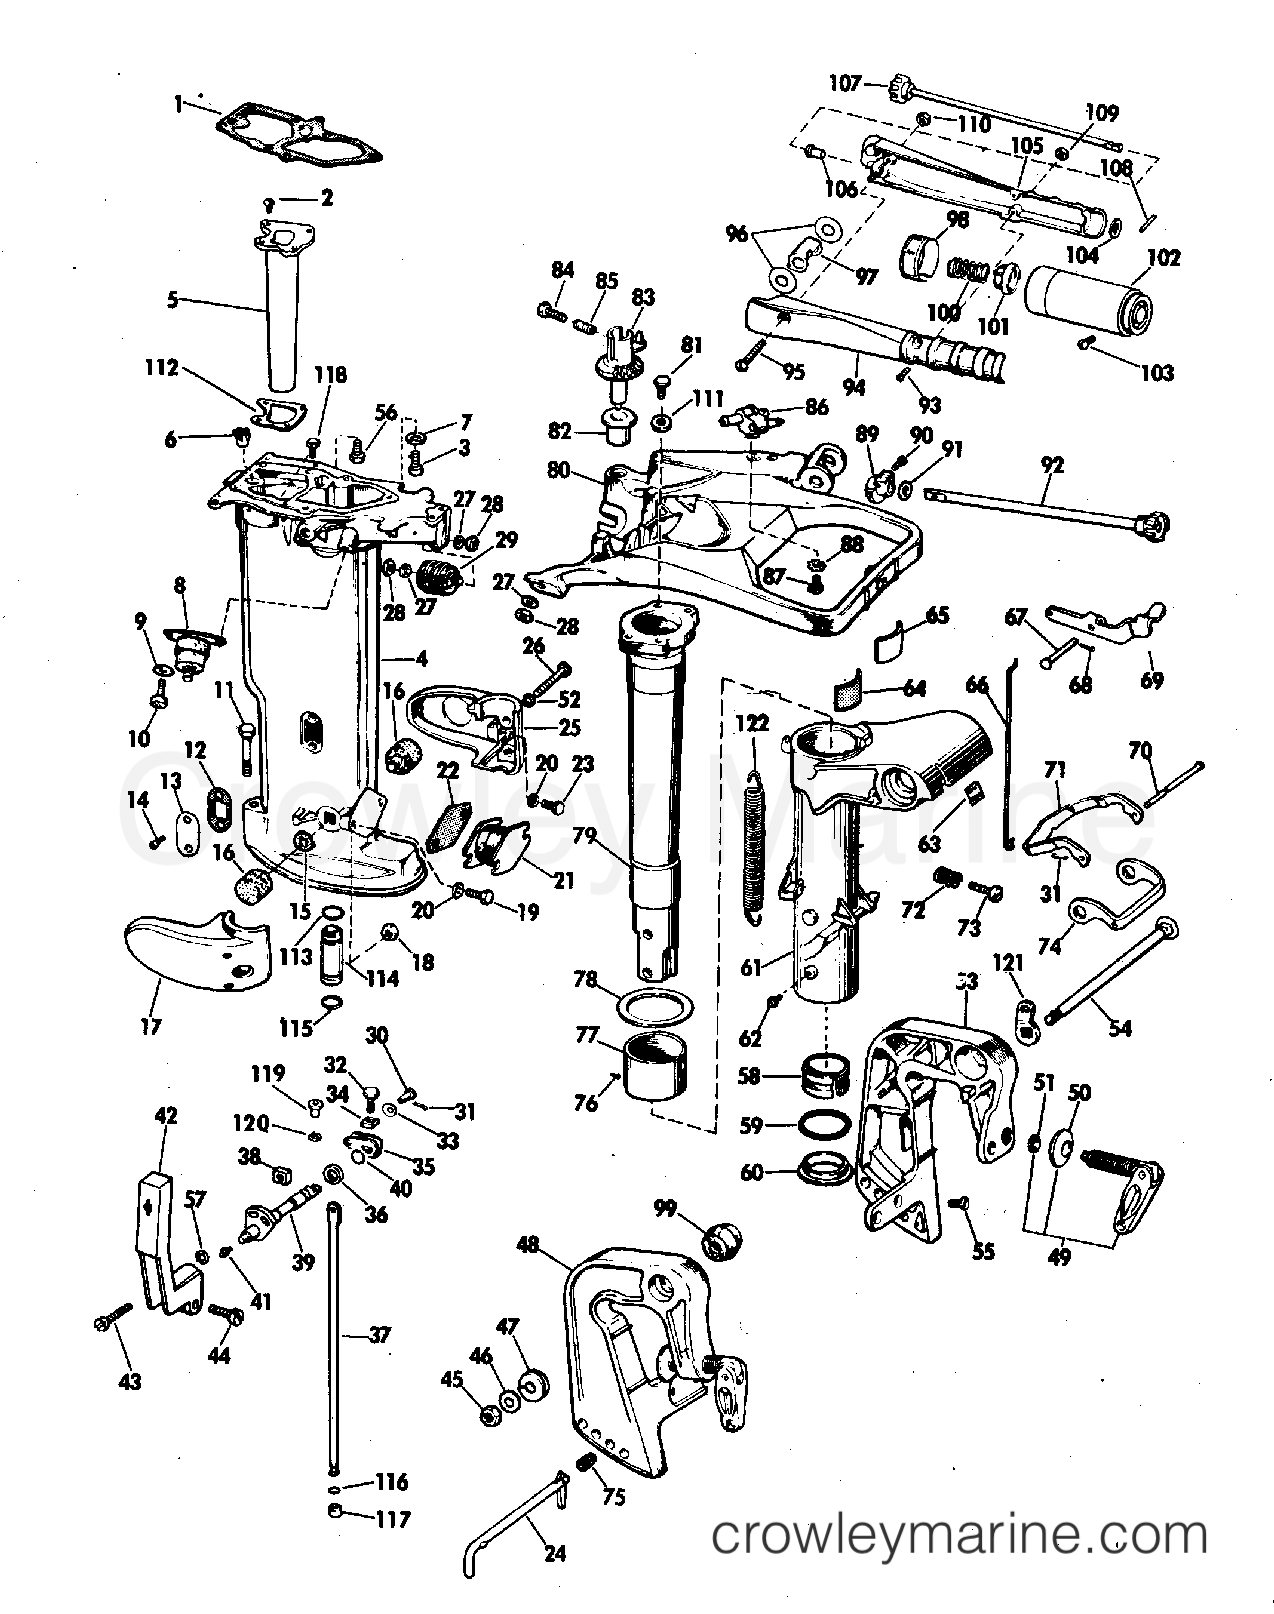 hight resolution of diagram of 1972 25e72r johnson outboard gearcase diagram and parts diagram of 1972 65esl72s johnson outboard motor cover diagram and